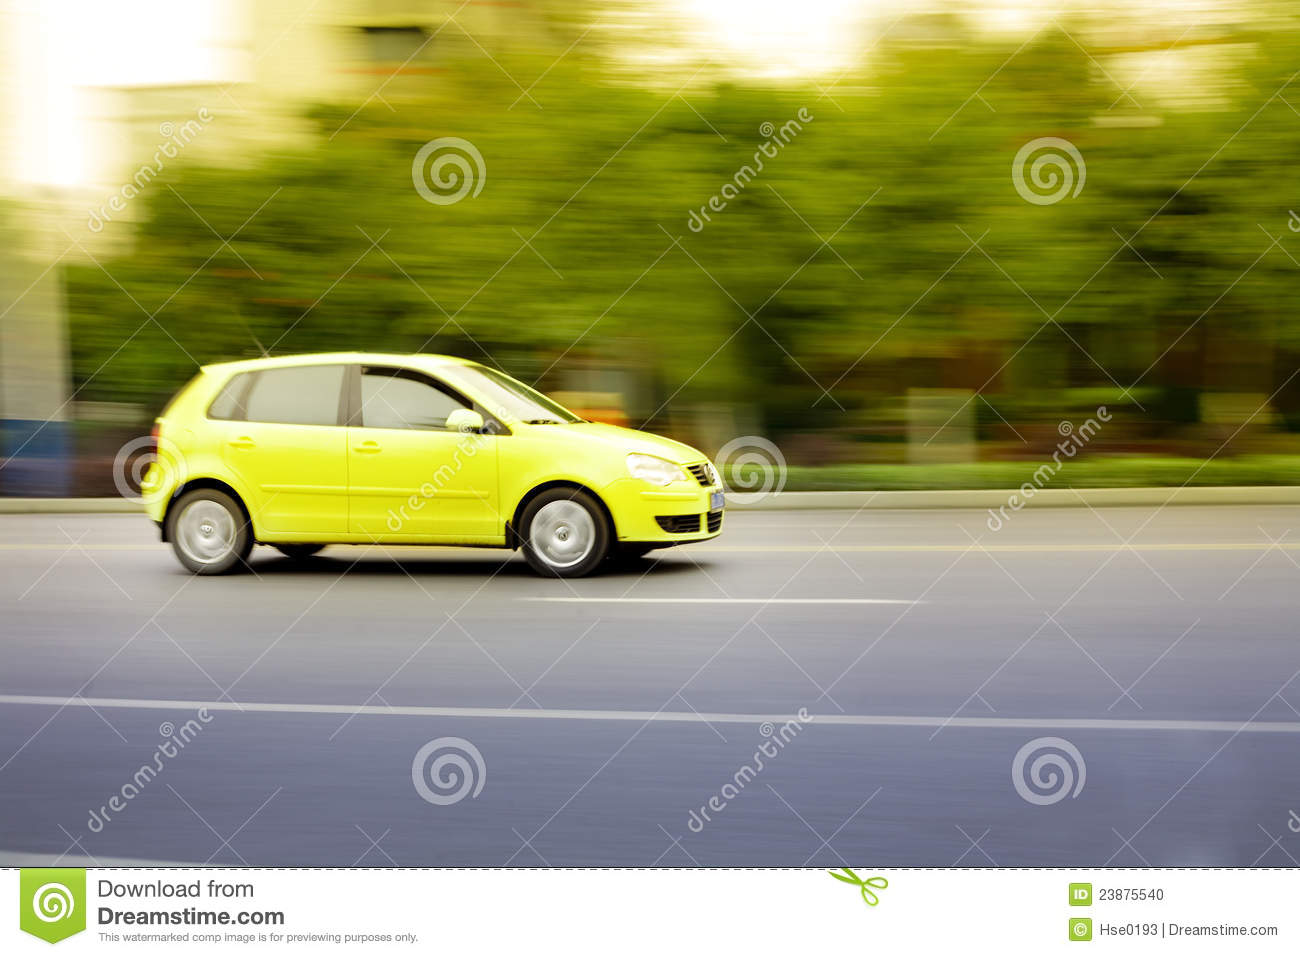 Fast car on road